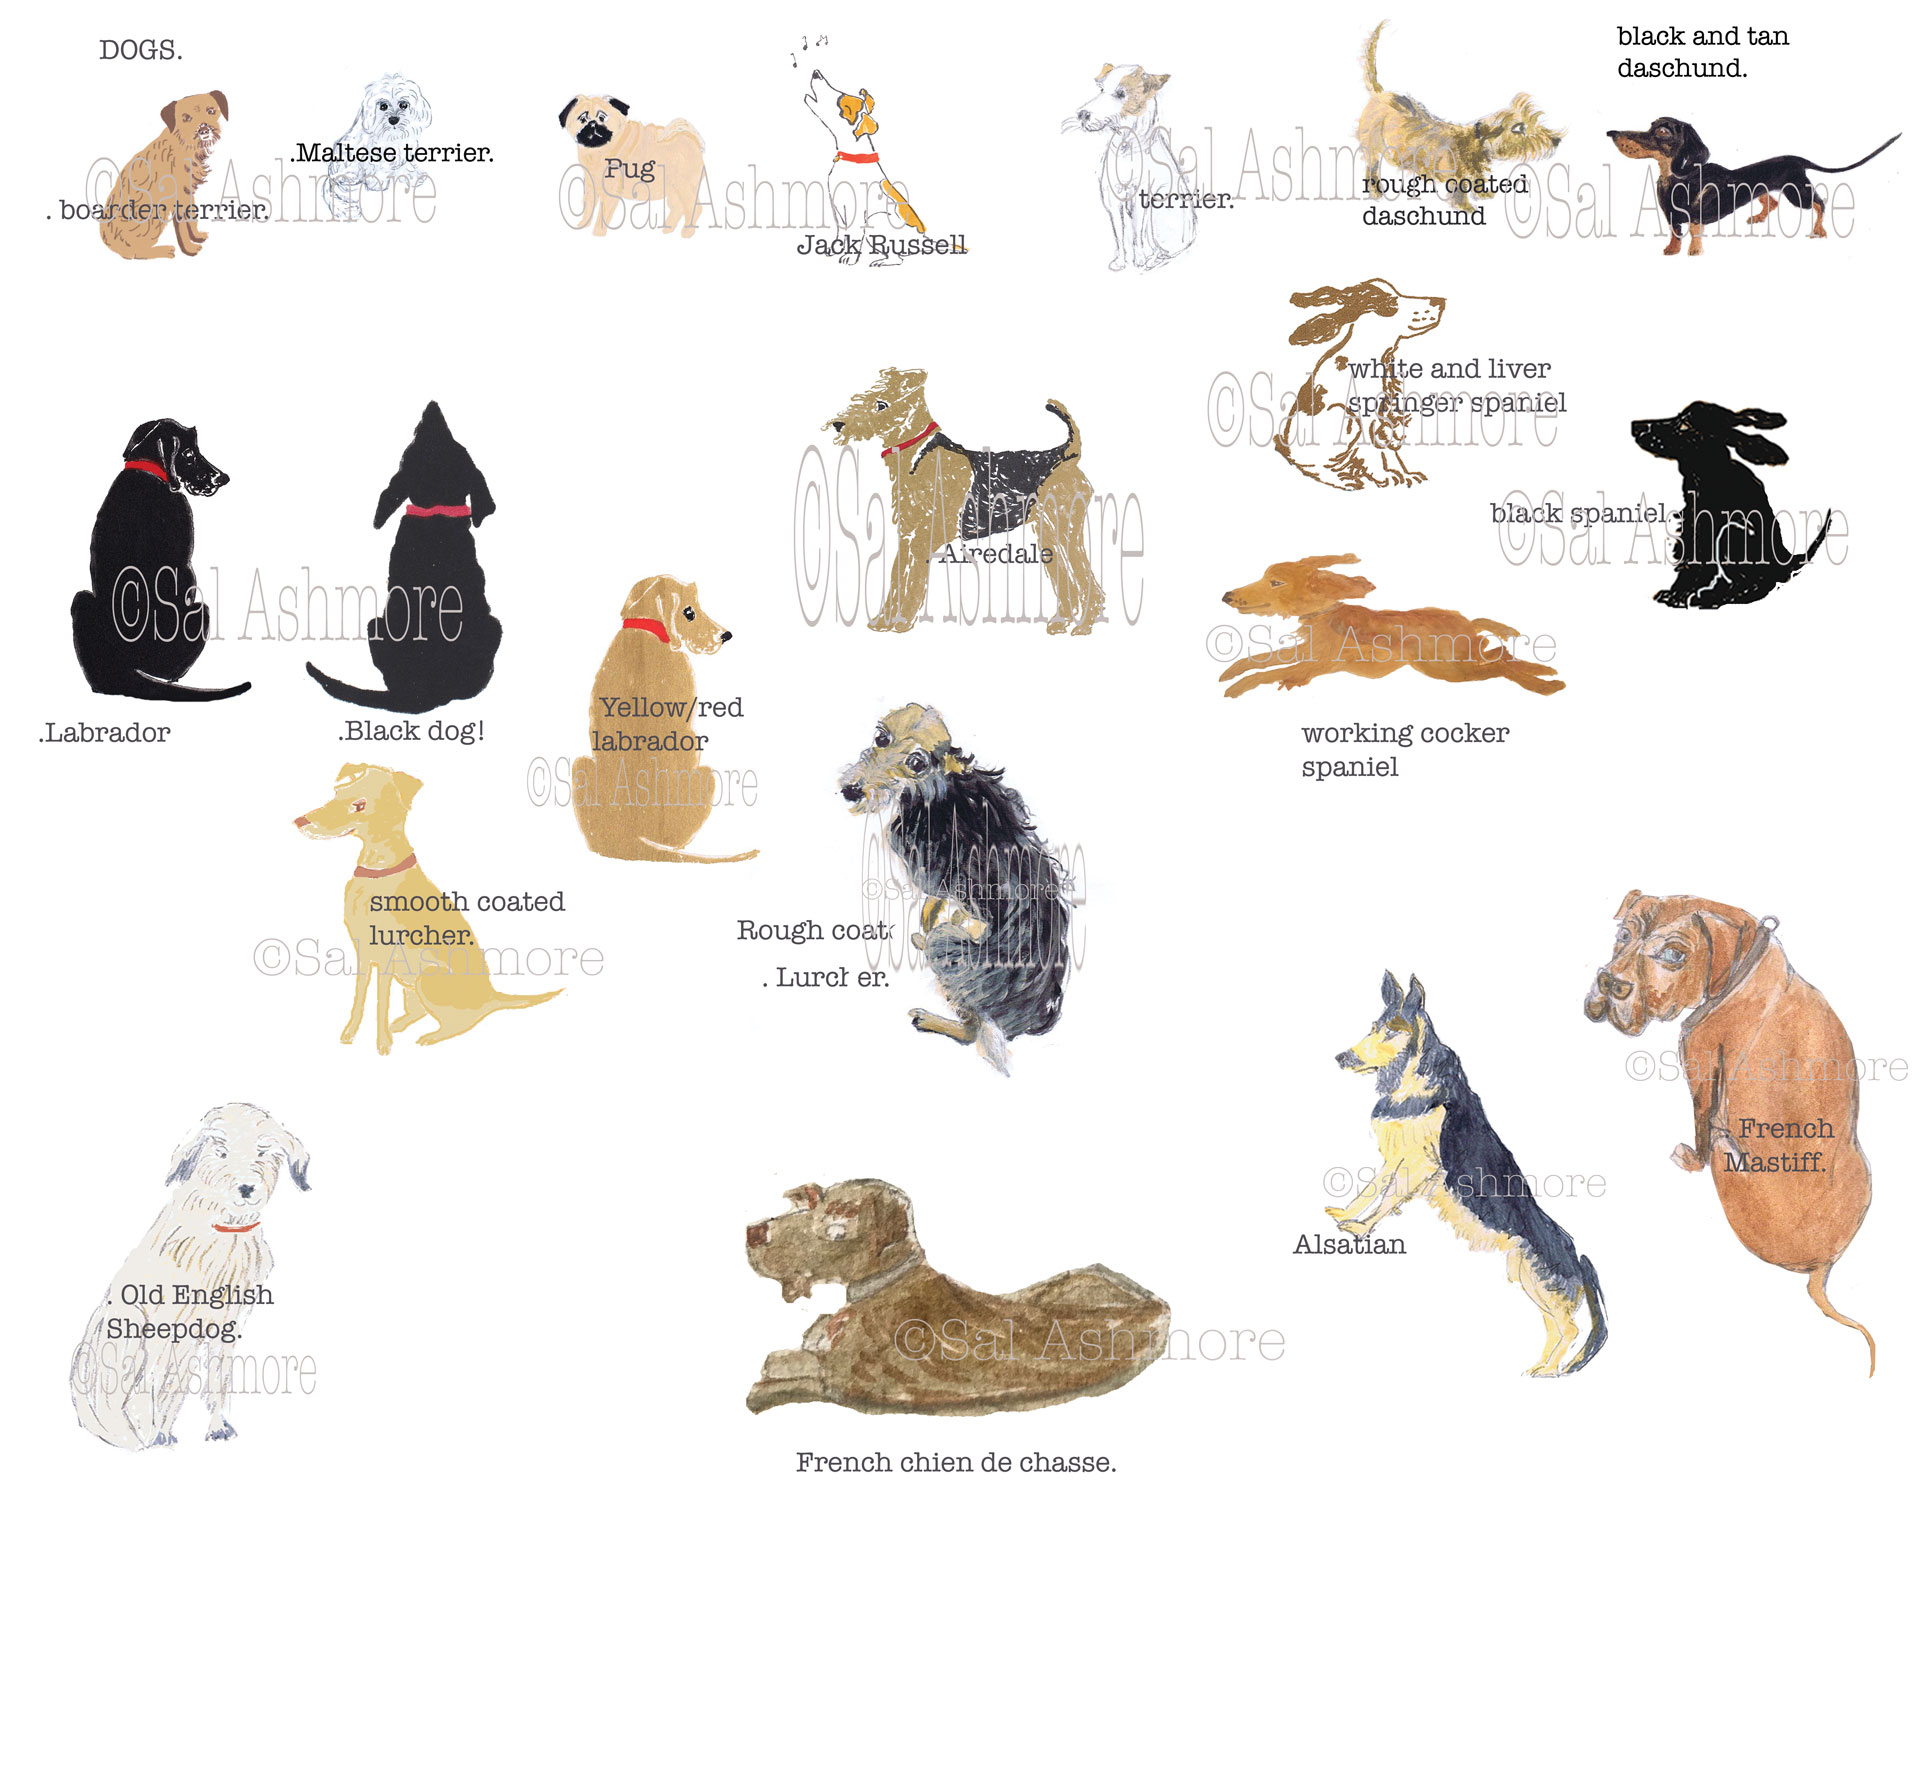 DOGS-watermarked